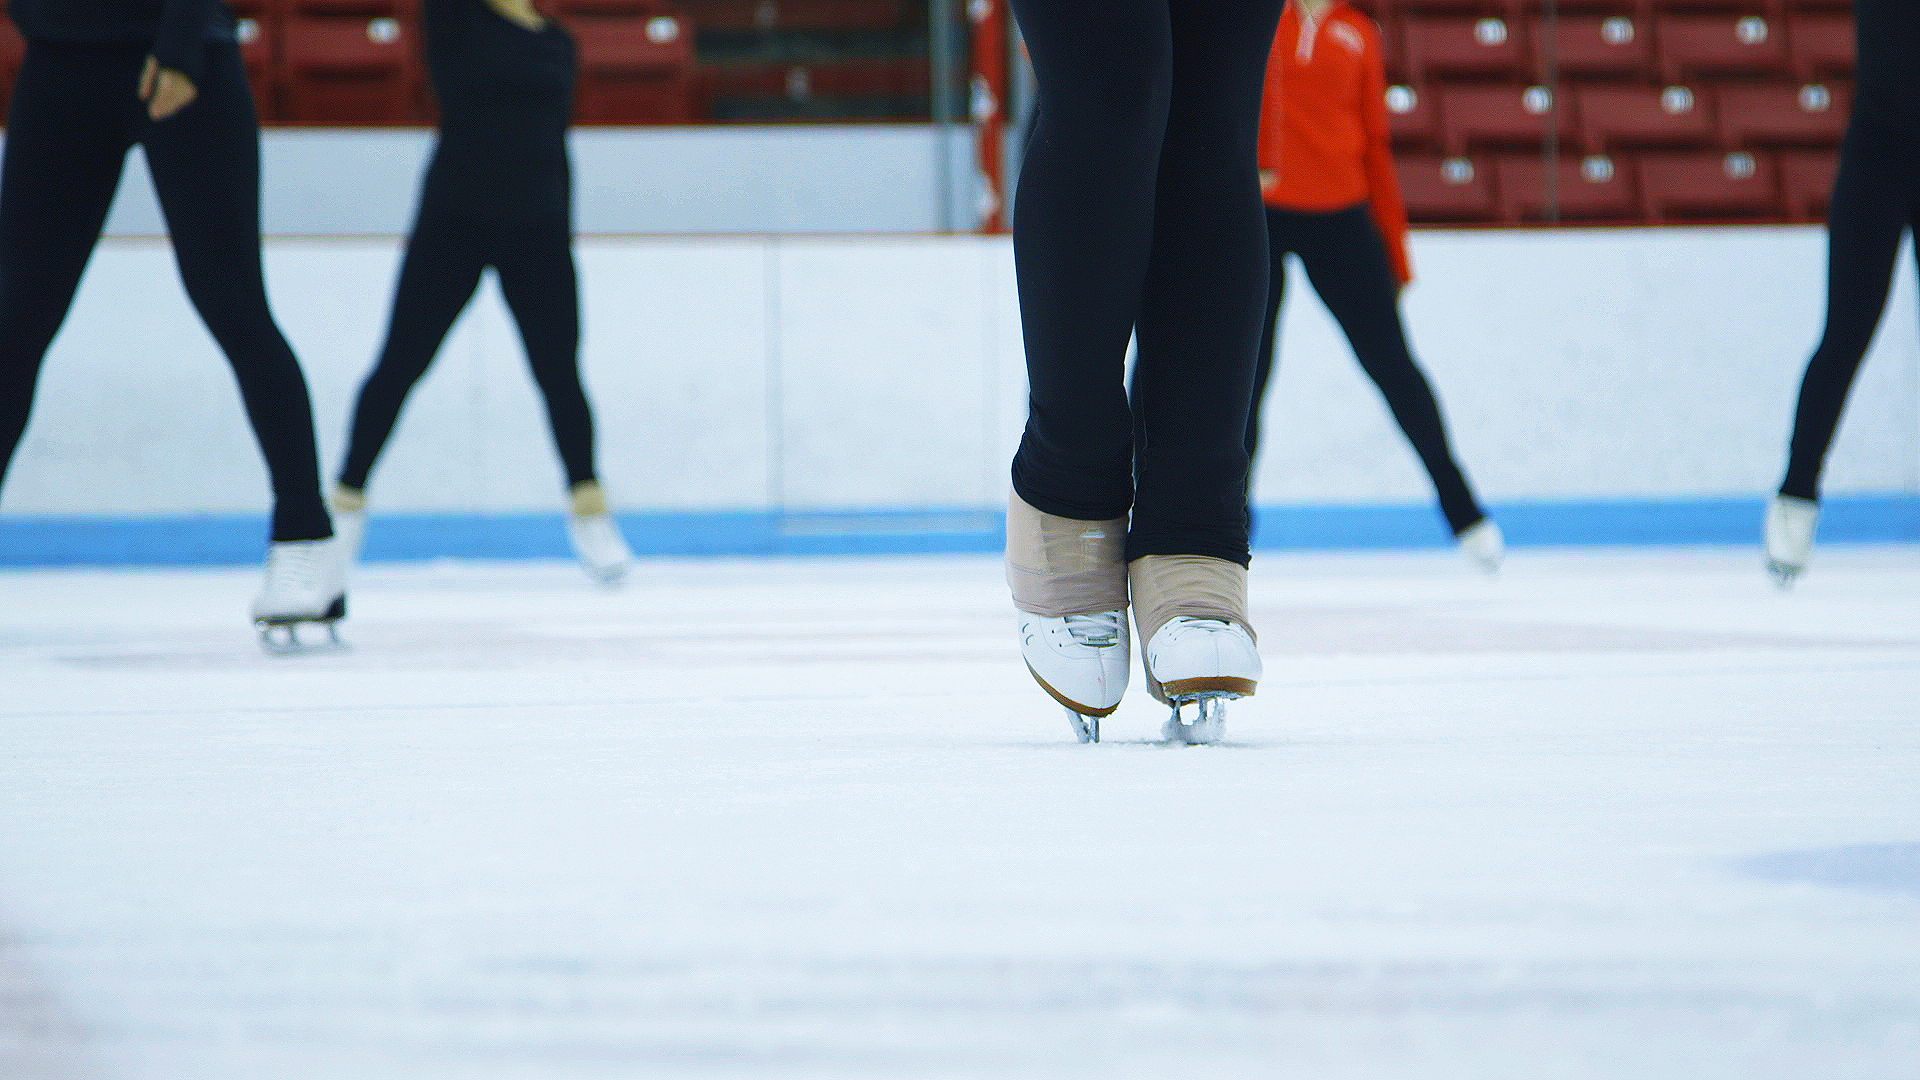 An ice skater skates on the rink in Agganis Areana